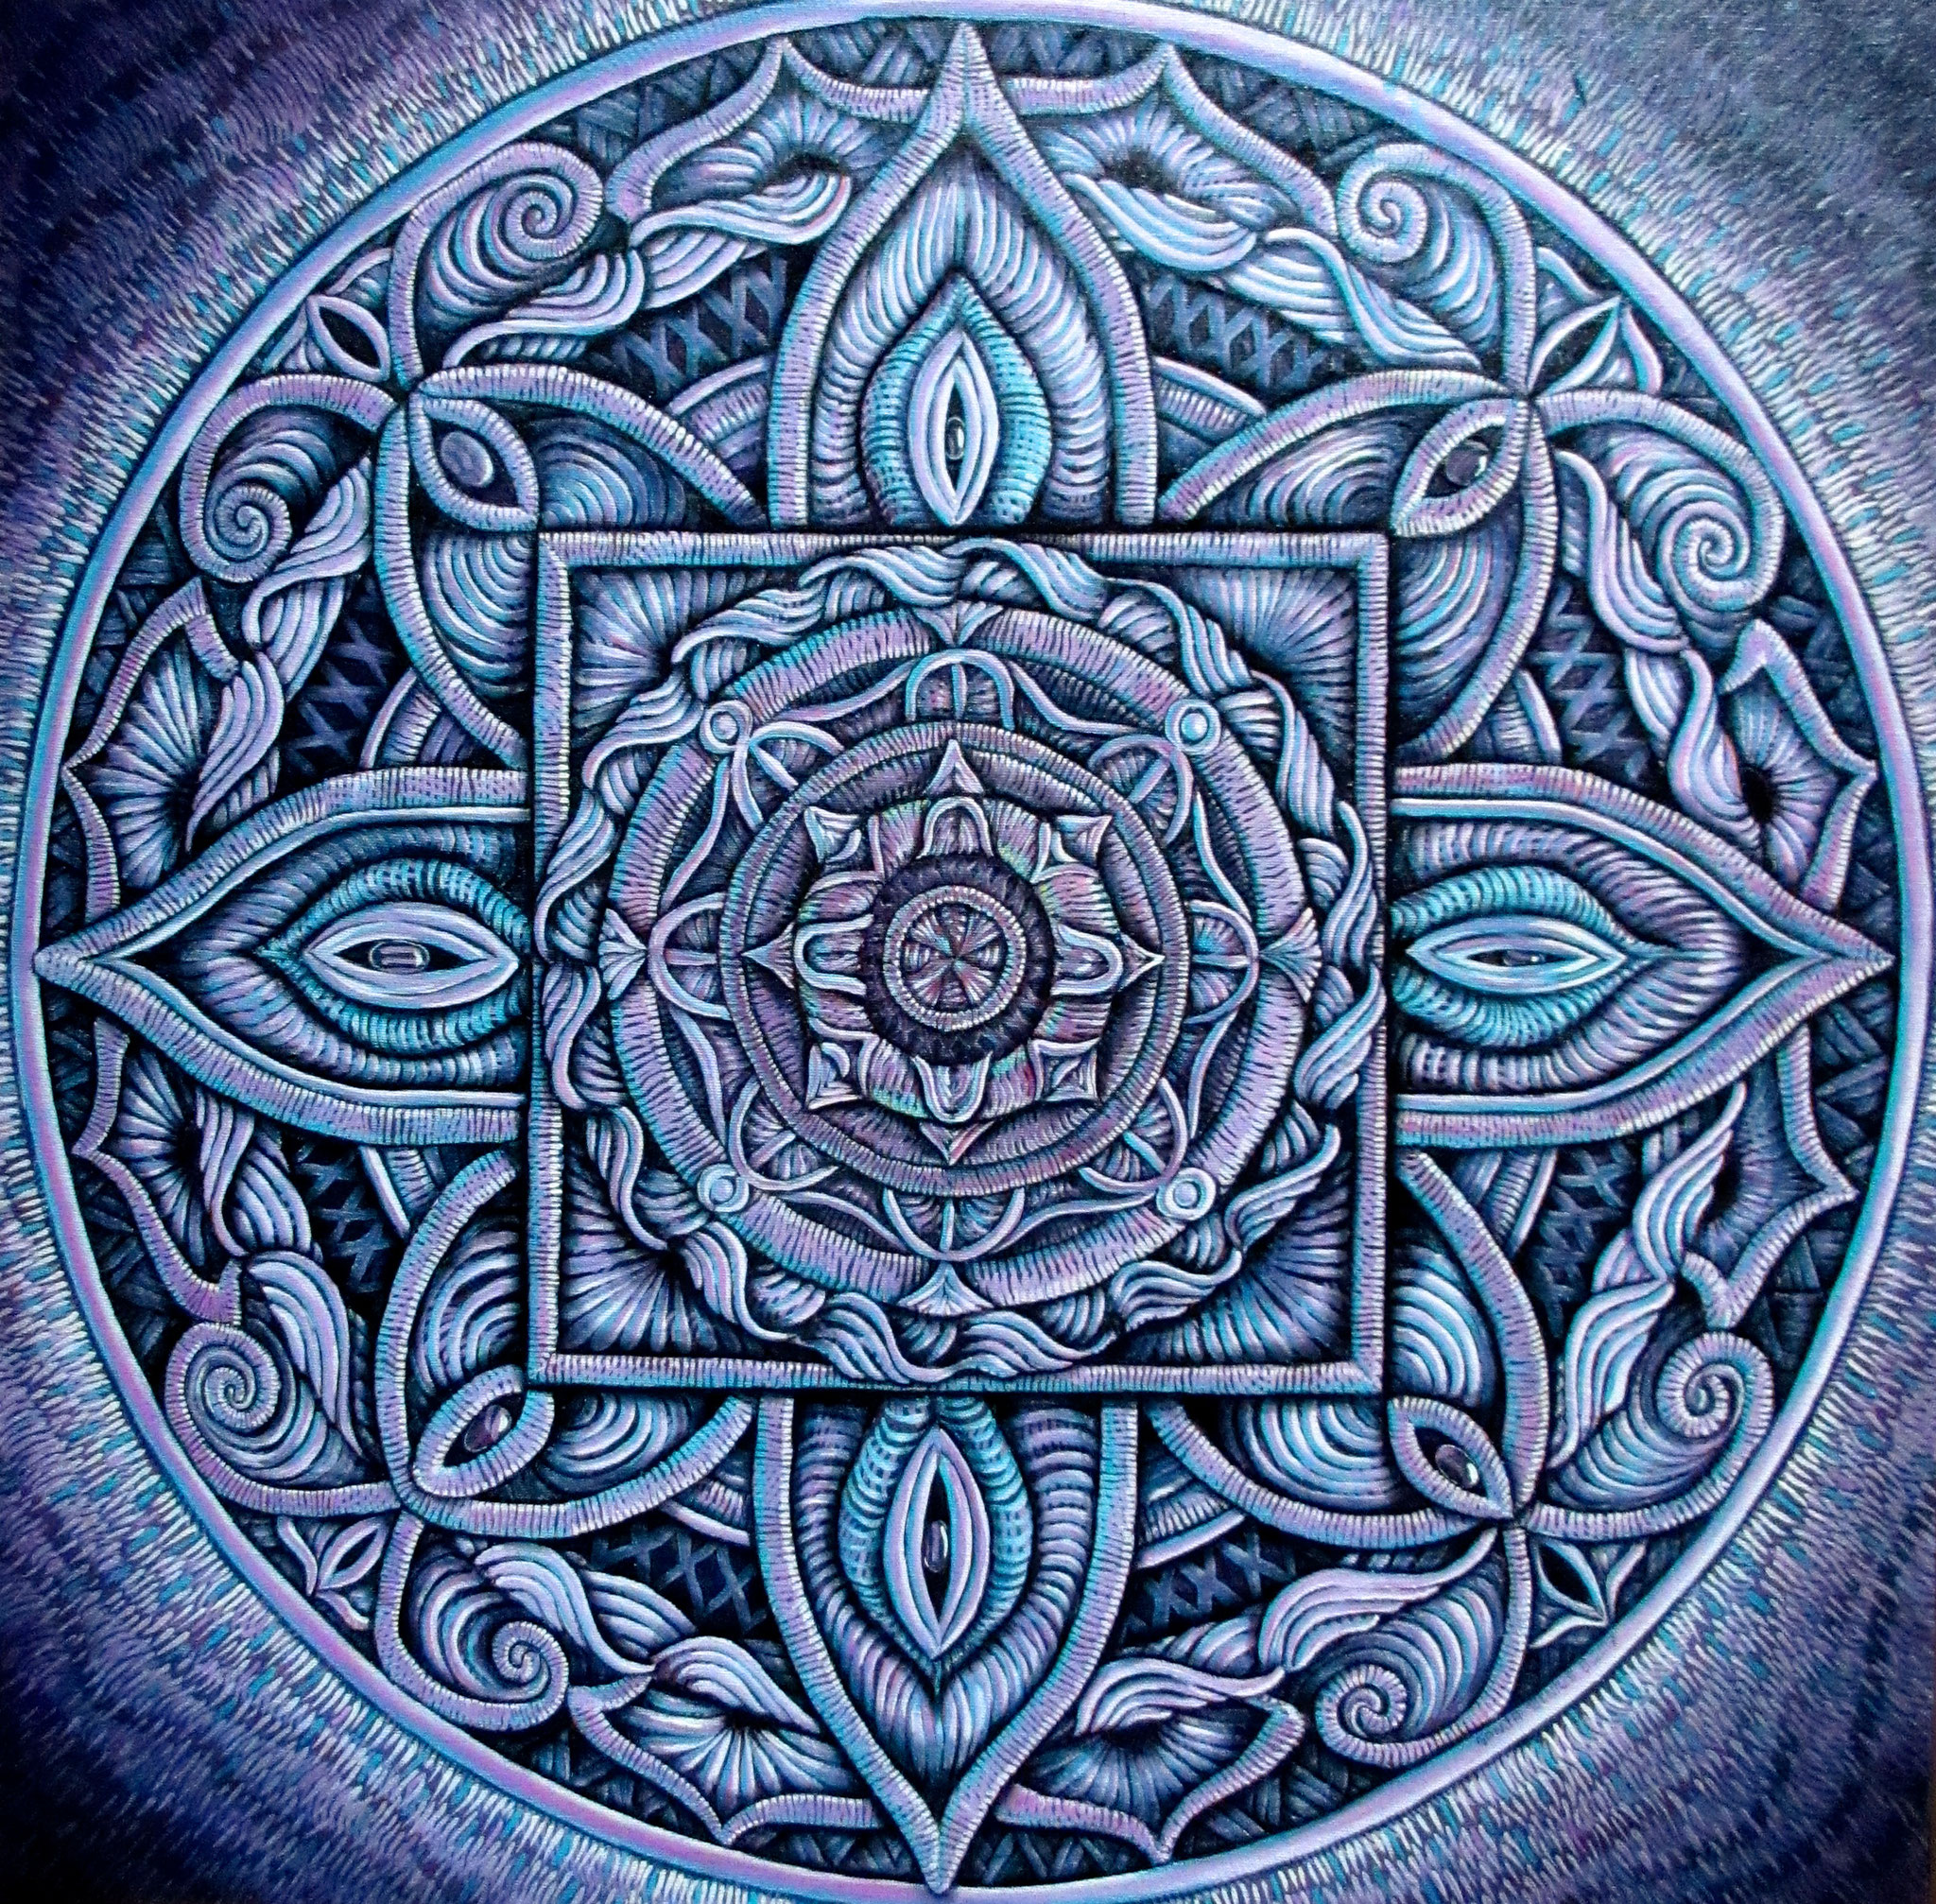 Mandala, oil on canvas 24x24, 8/2017 (8-9)